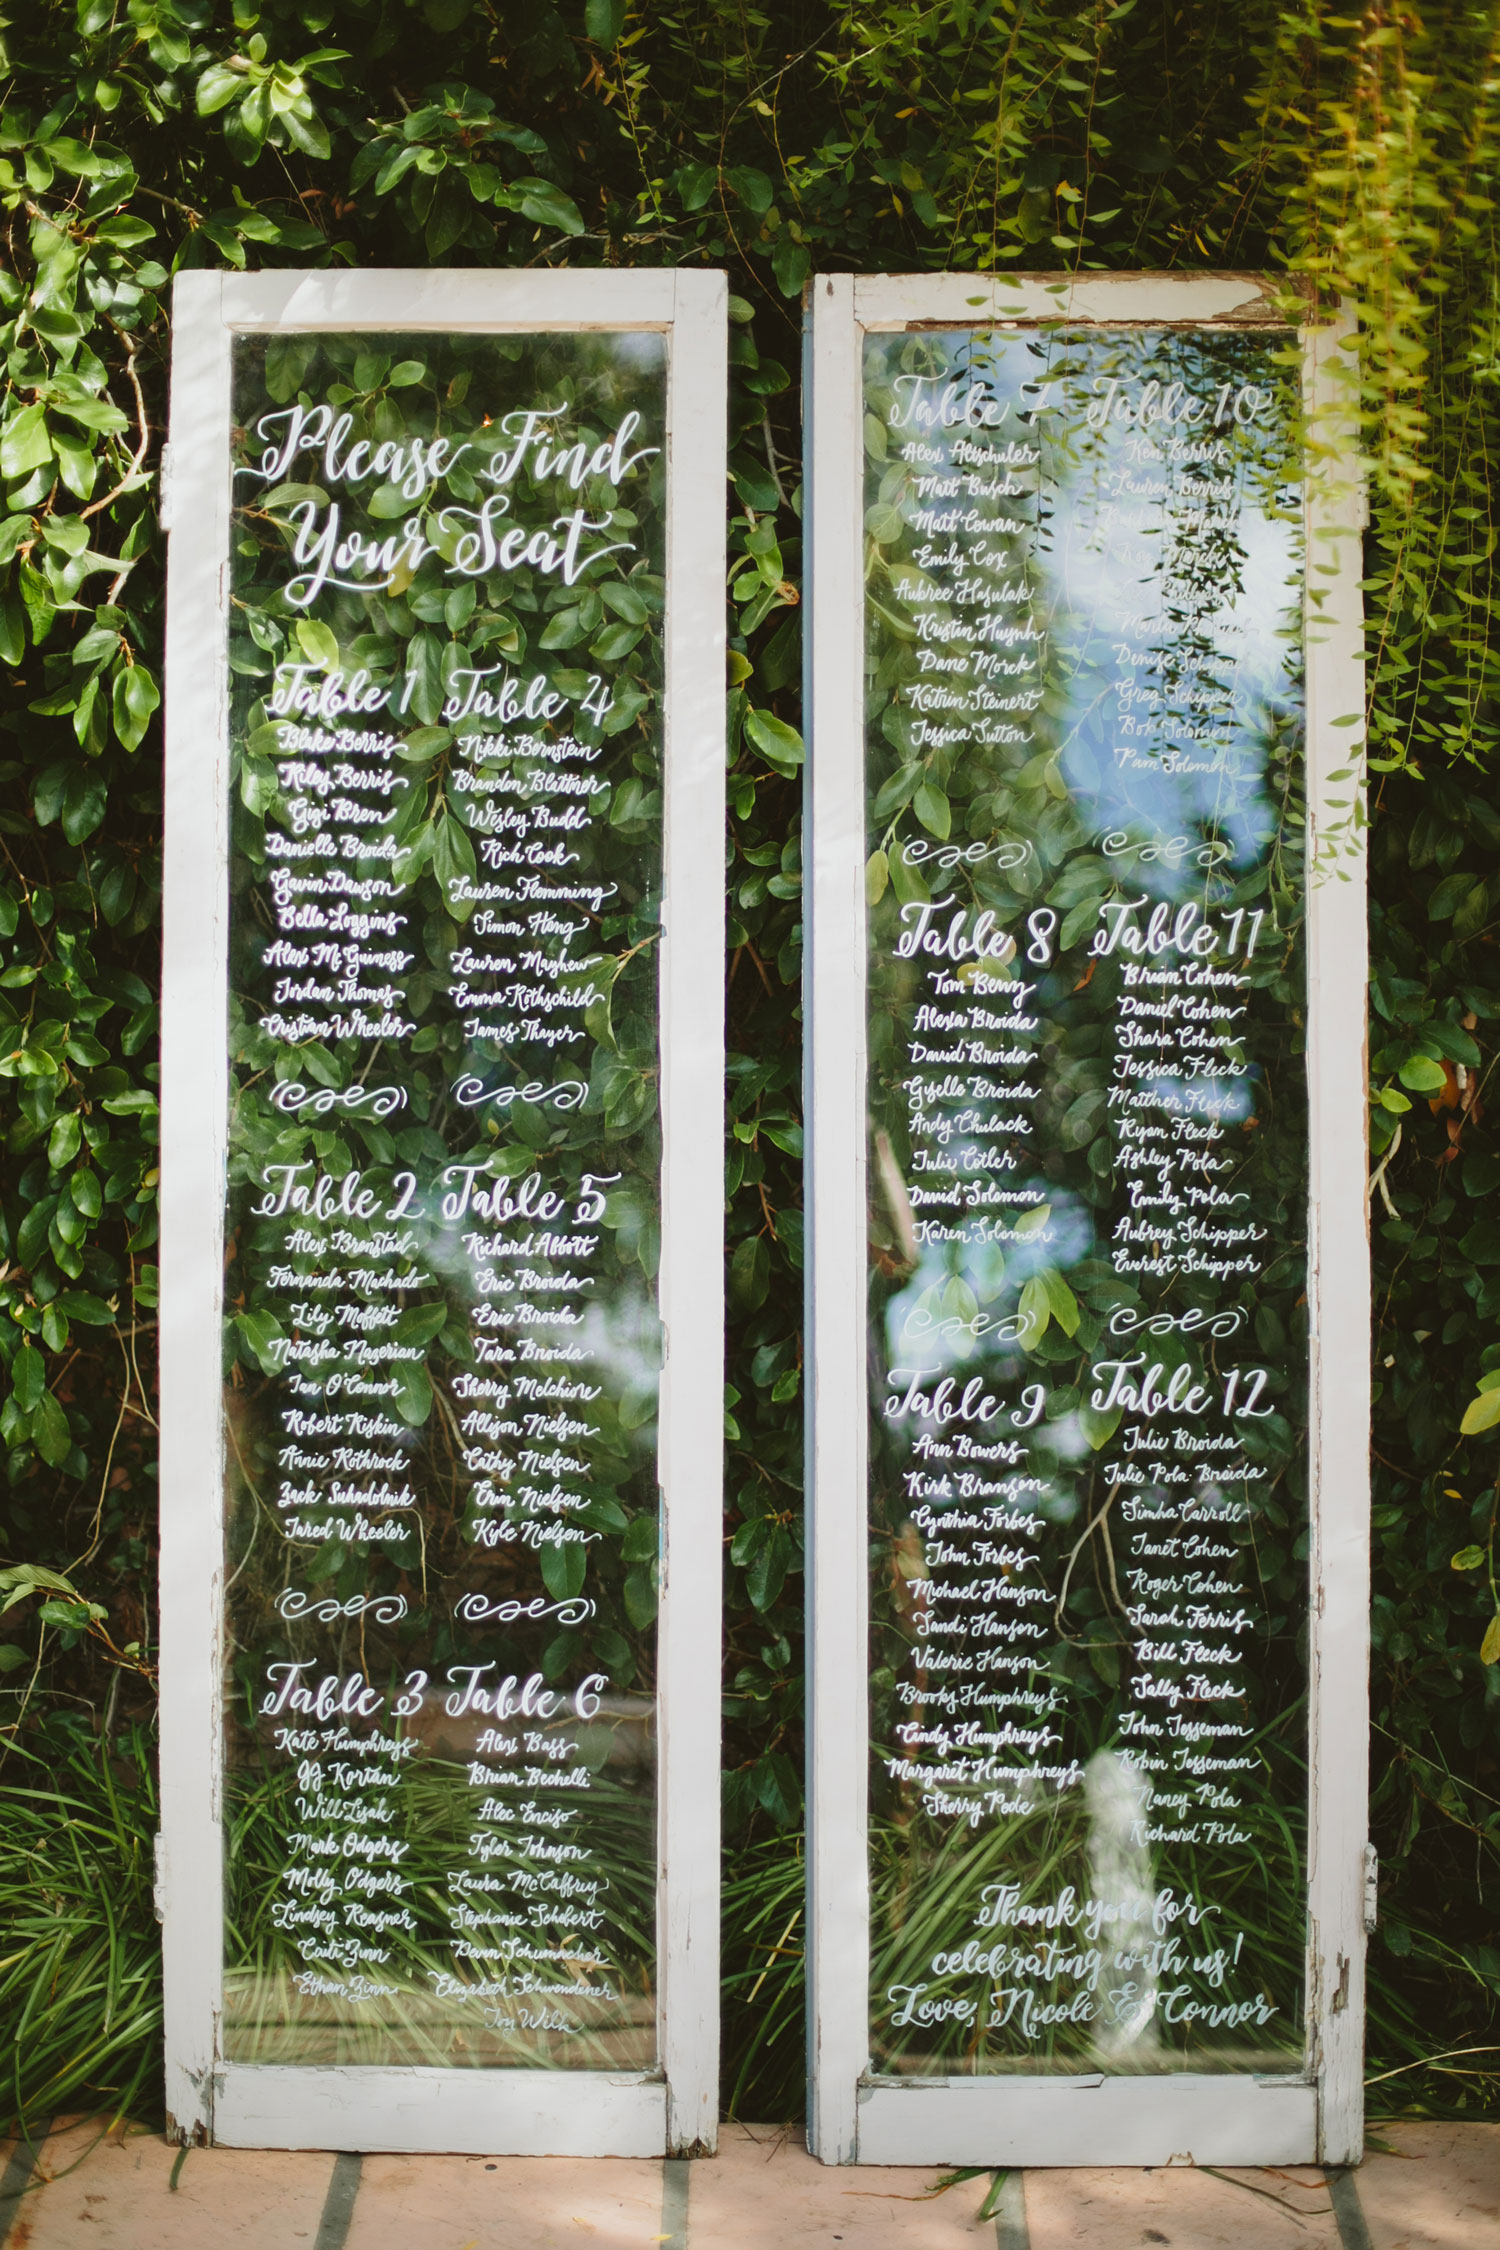 Tall rustic window seating chart with calligraphy on glass